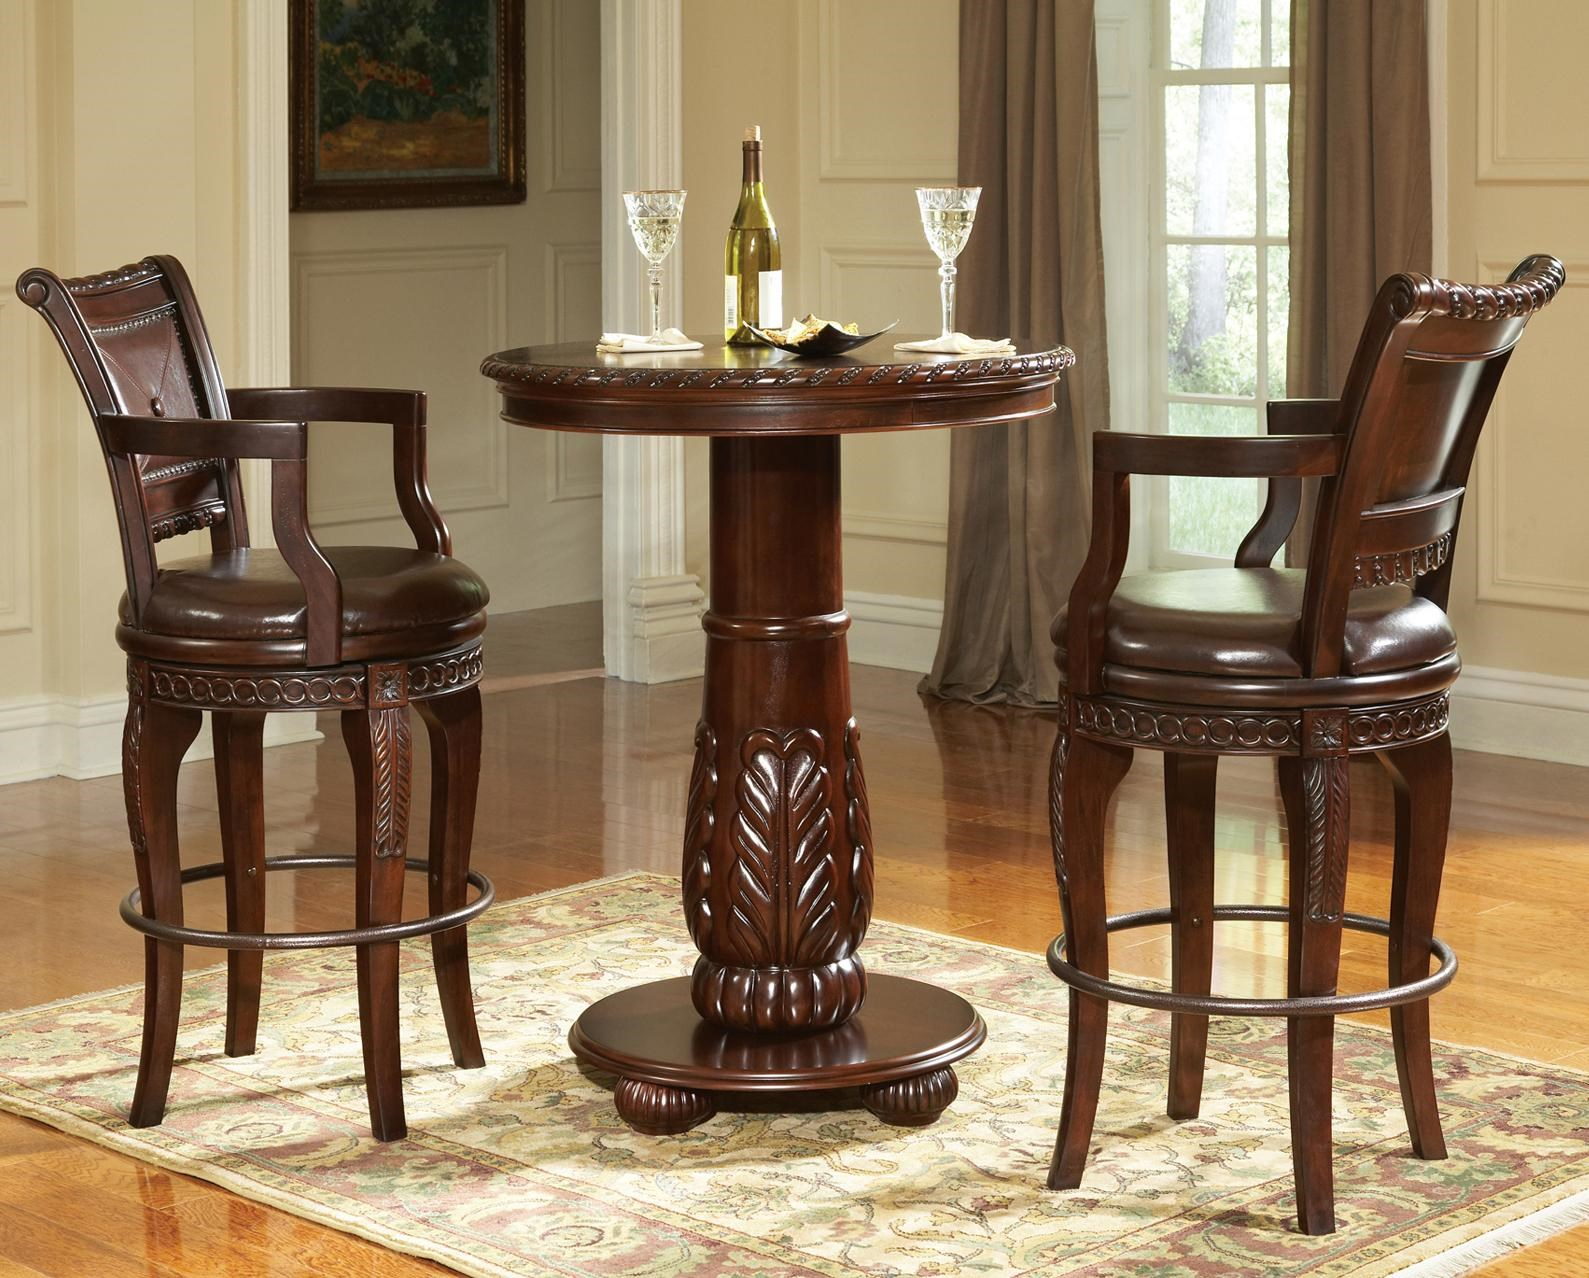 steve silver antoinette 3piece pedestal pub table u0026 bar stool set